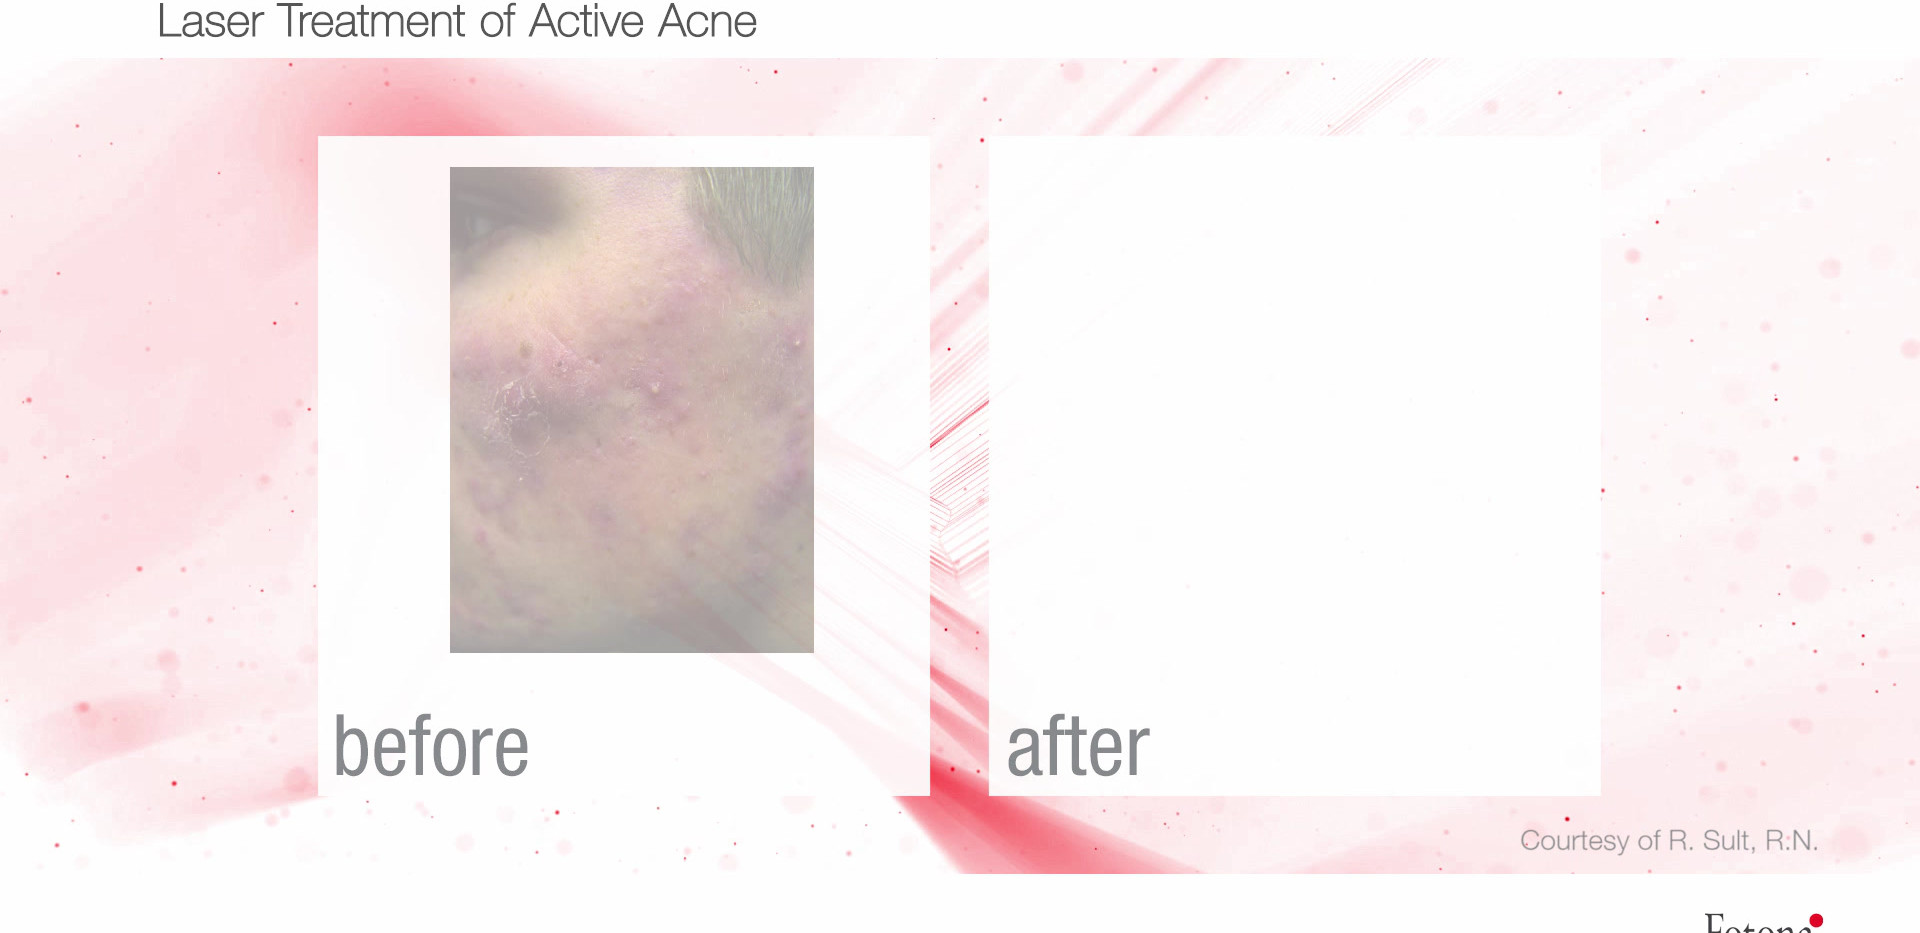 Laser Treatment of Active Acne